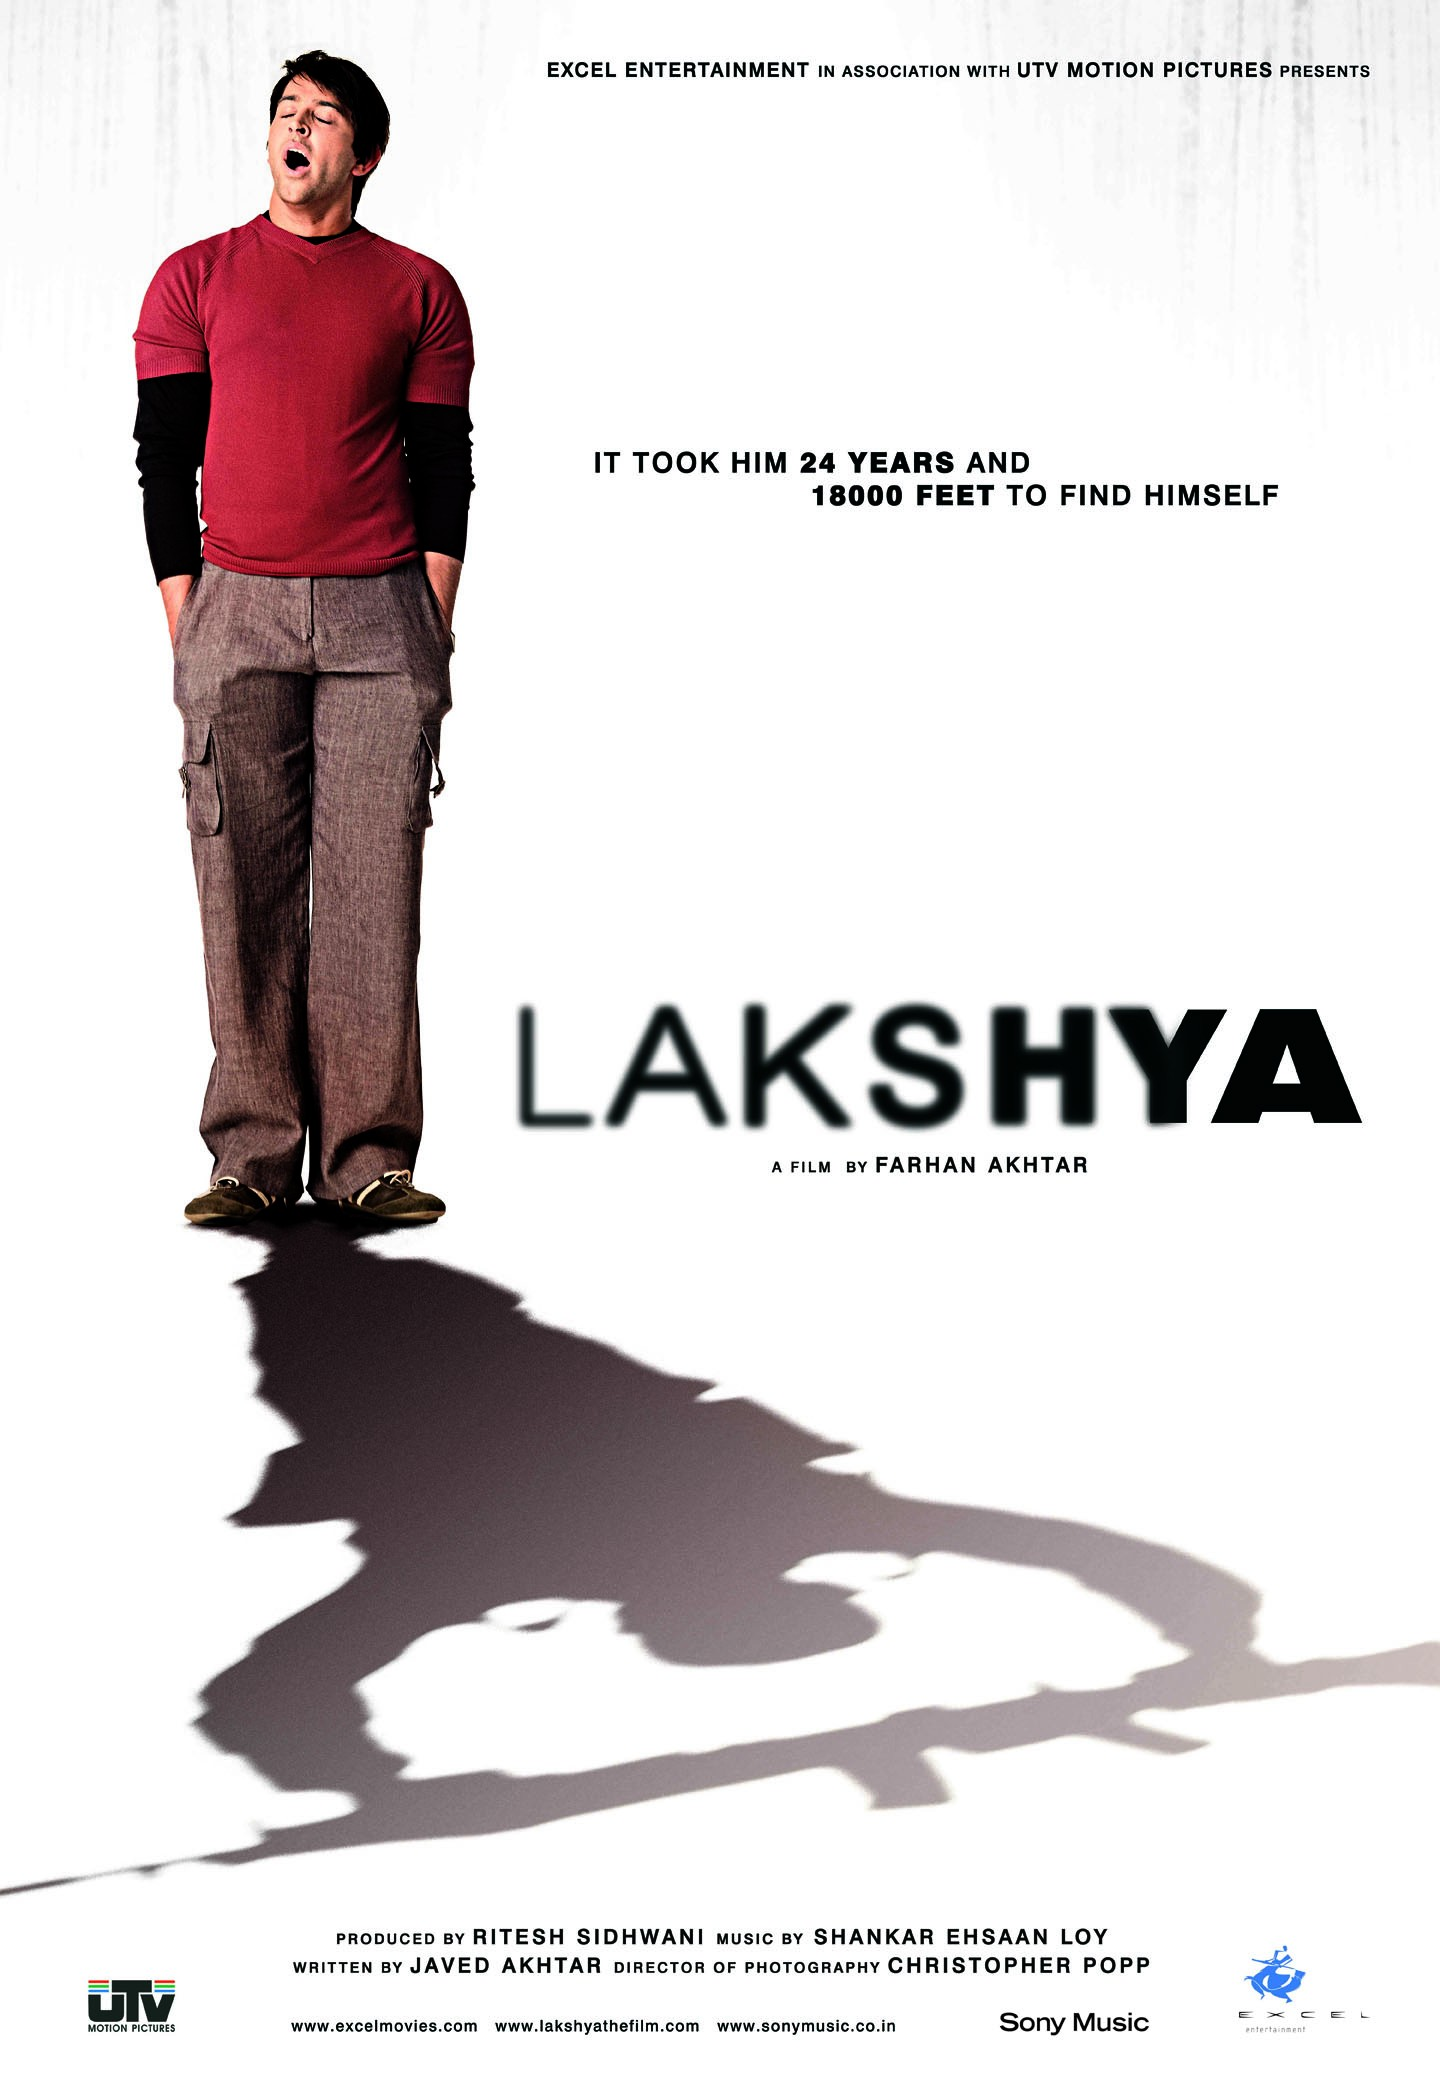 Lakshya hd on soap2day